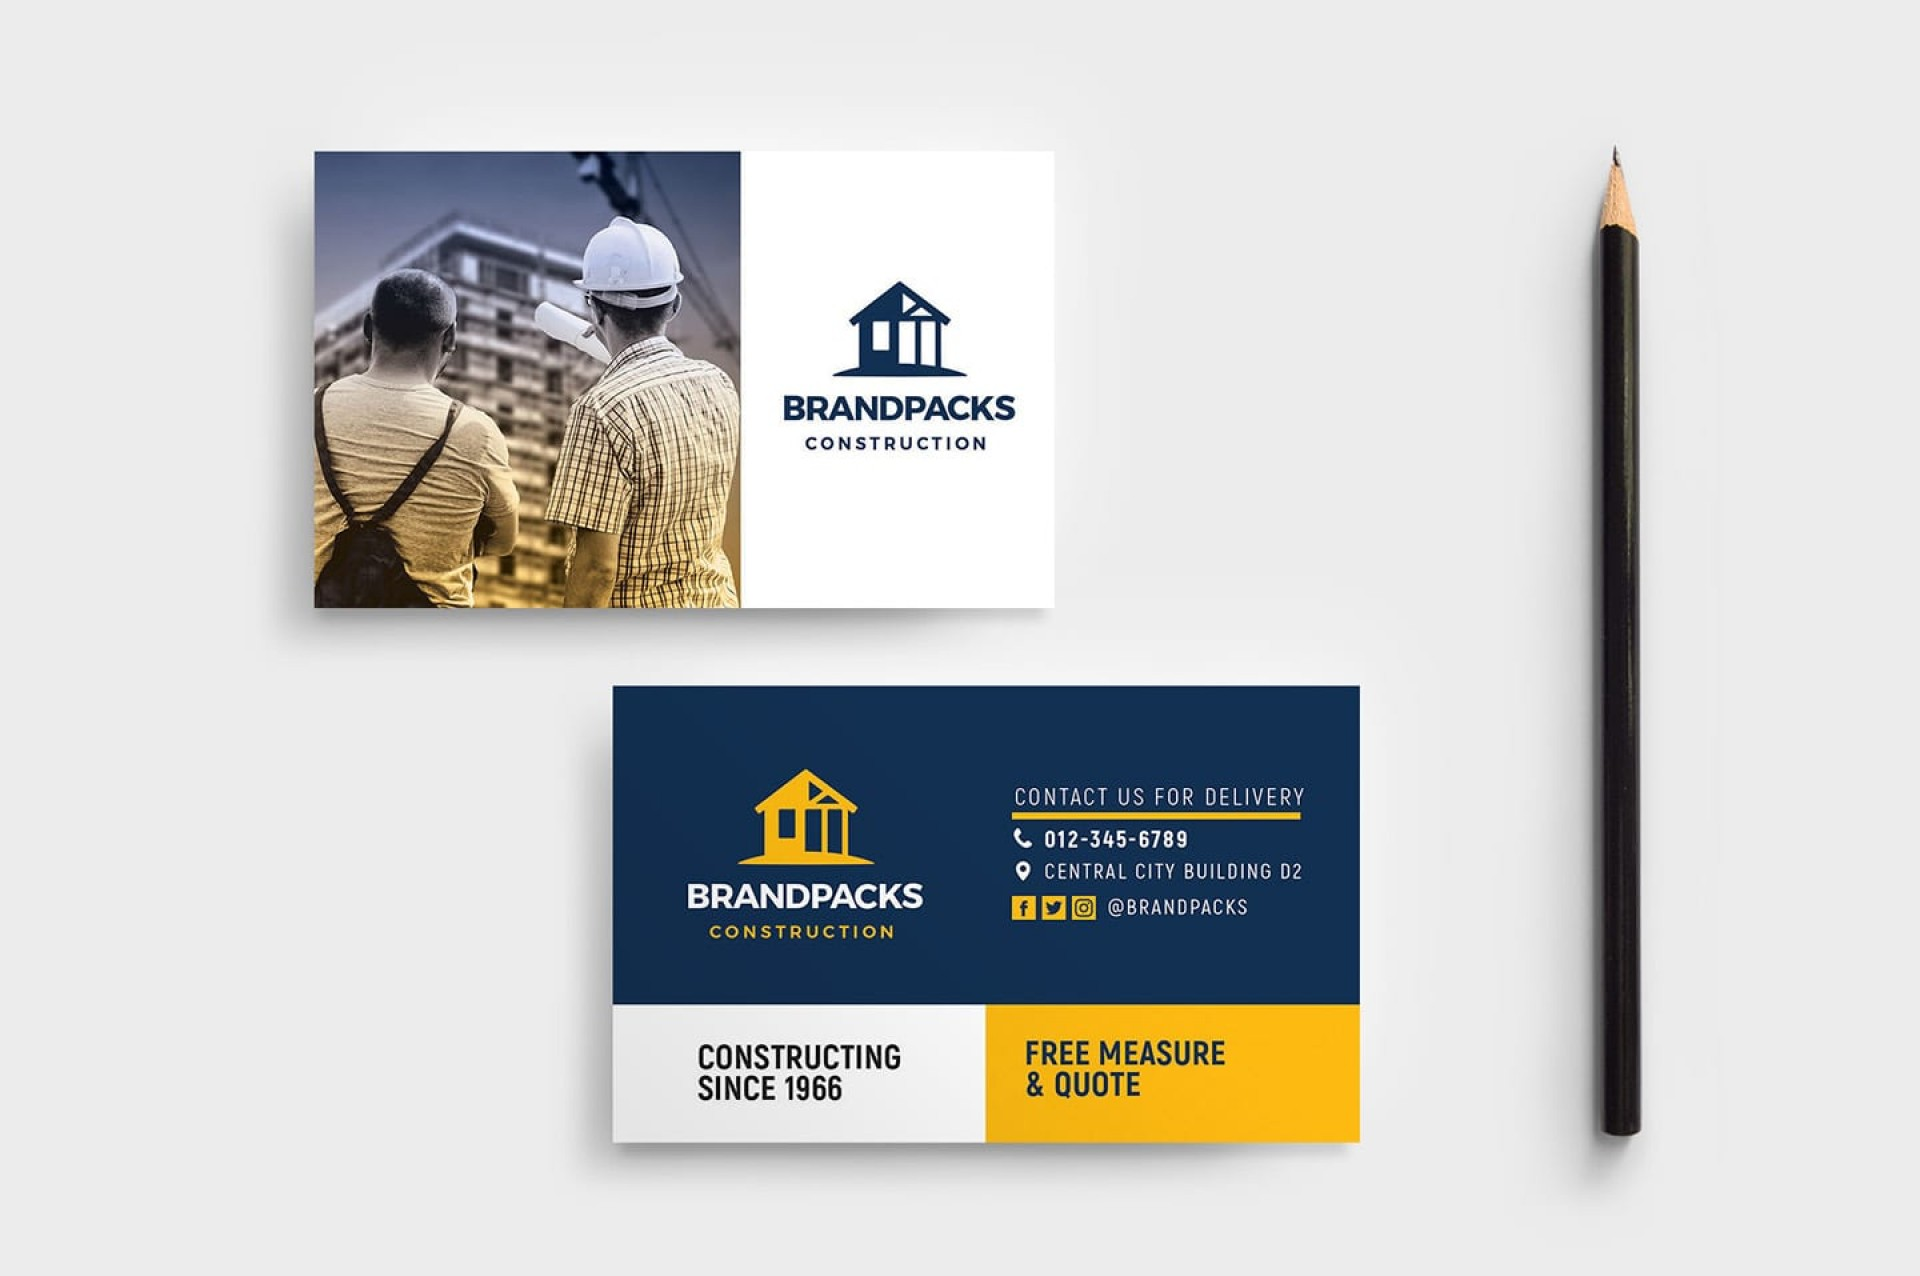 005 Unforgettable Construction Busines Card Template High Definition  Templates Visiting Company Format Design Psd1920